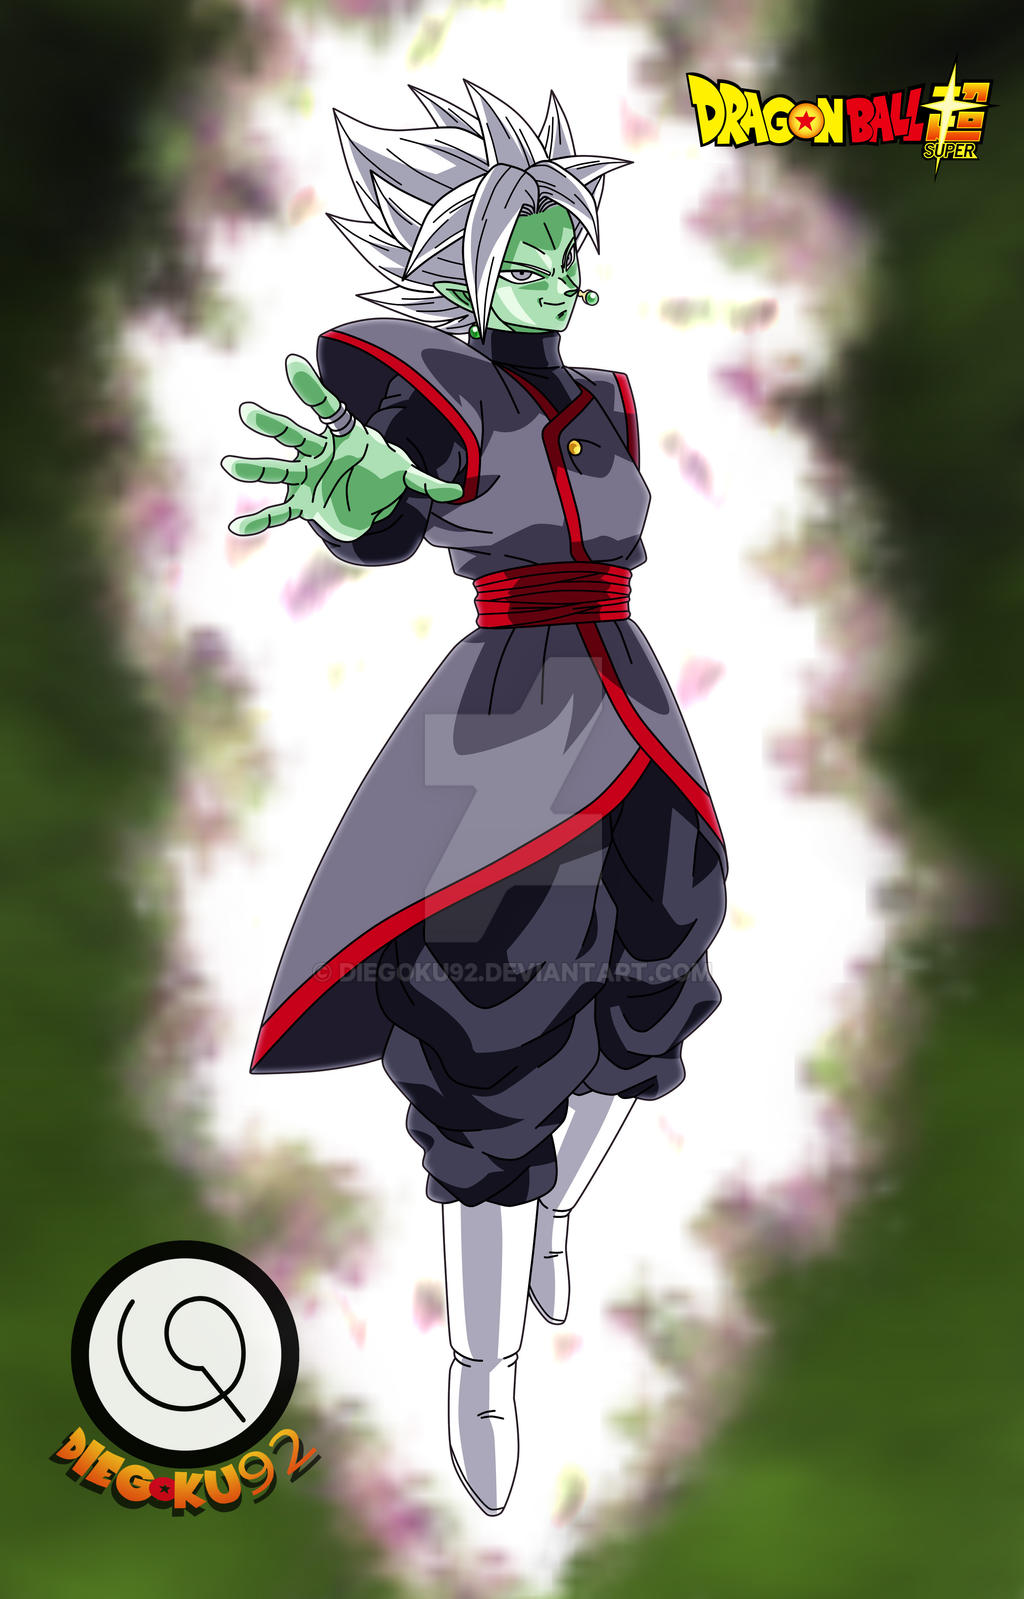 Merged Zamasu 001 By Diegoku92 On Deviantart